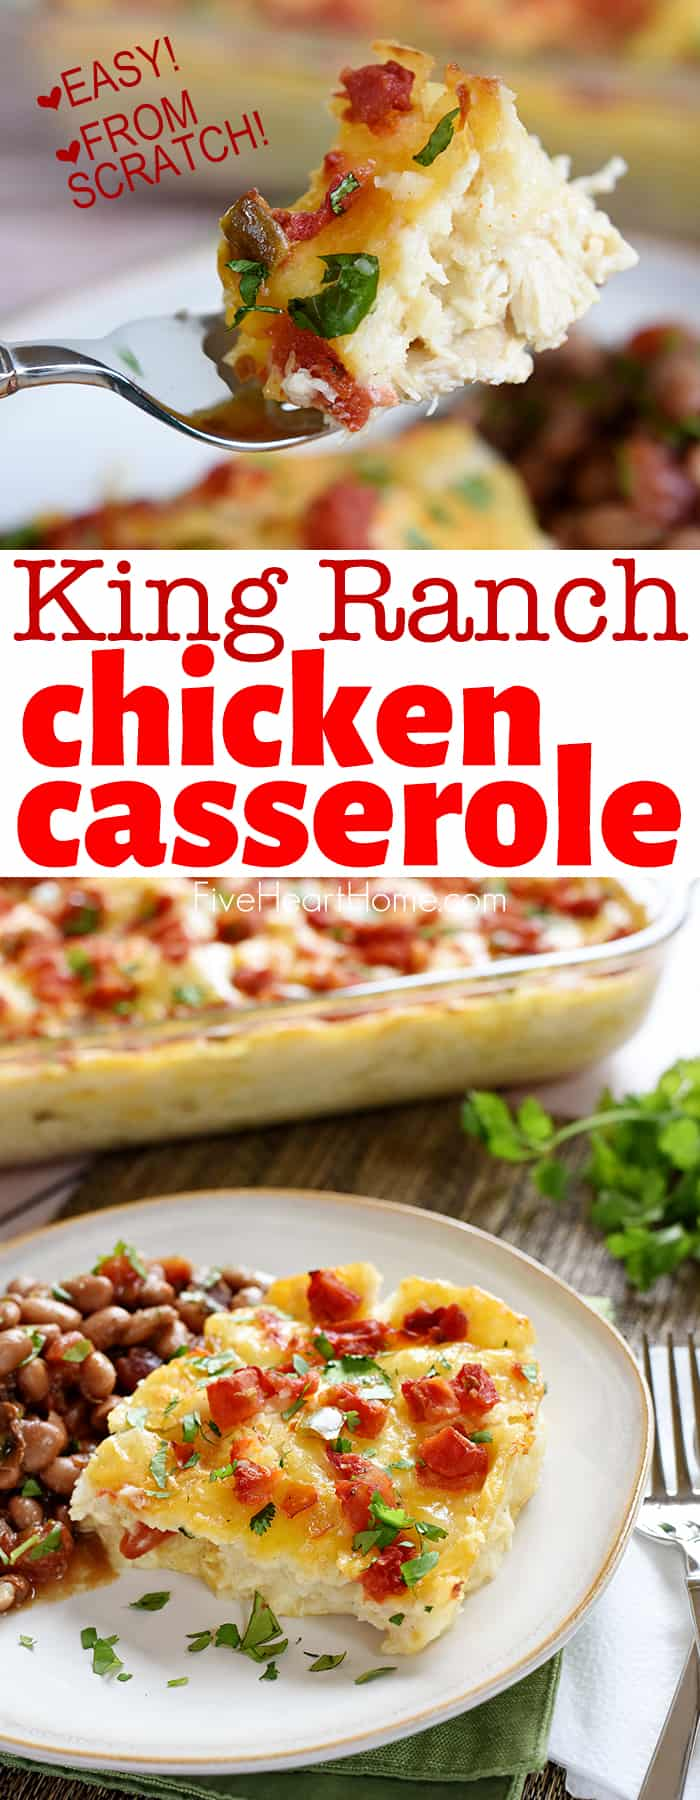 King Ranch Chicken Casserole collage with text overlay